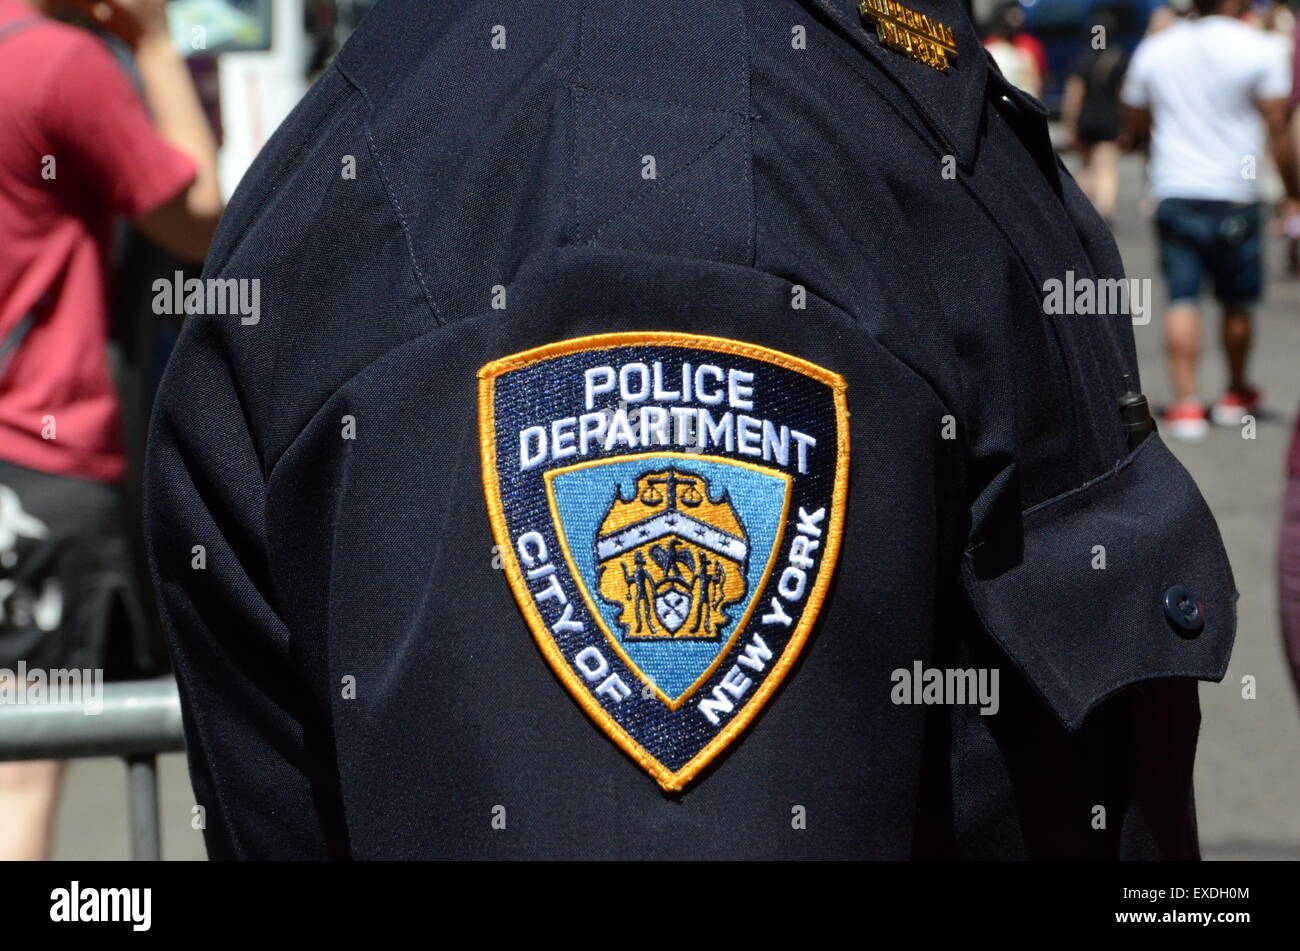 NYPD badge on shirt of a cop in New York City - Stock Image